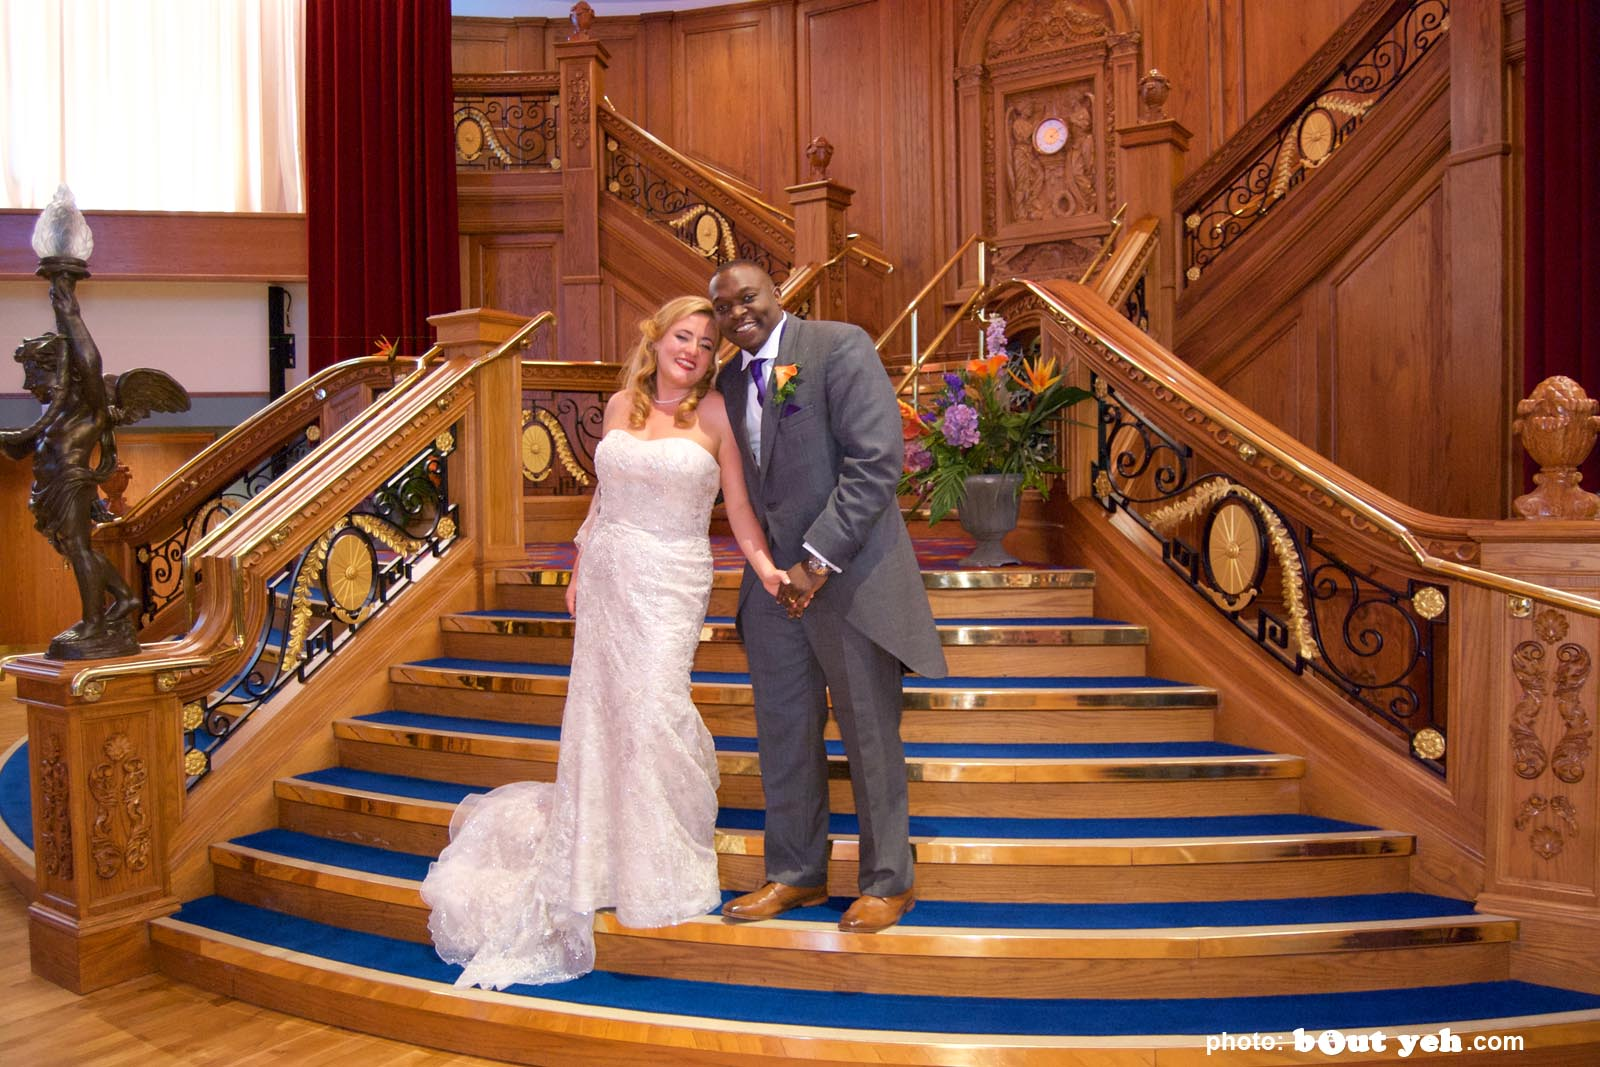 Paul and Emma's wedding photographed by Bout Yeh wedding photographers and video services Belfast and Northern Ireland. Photo 5819